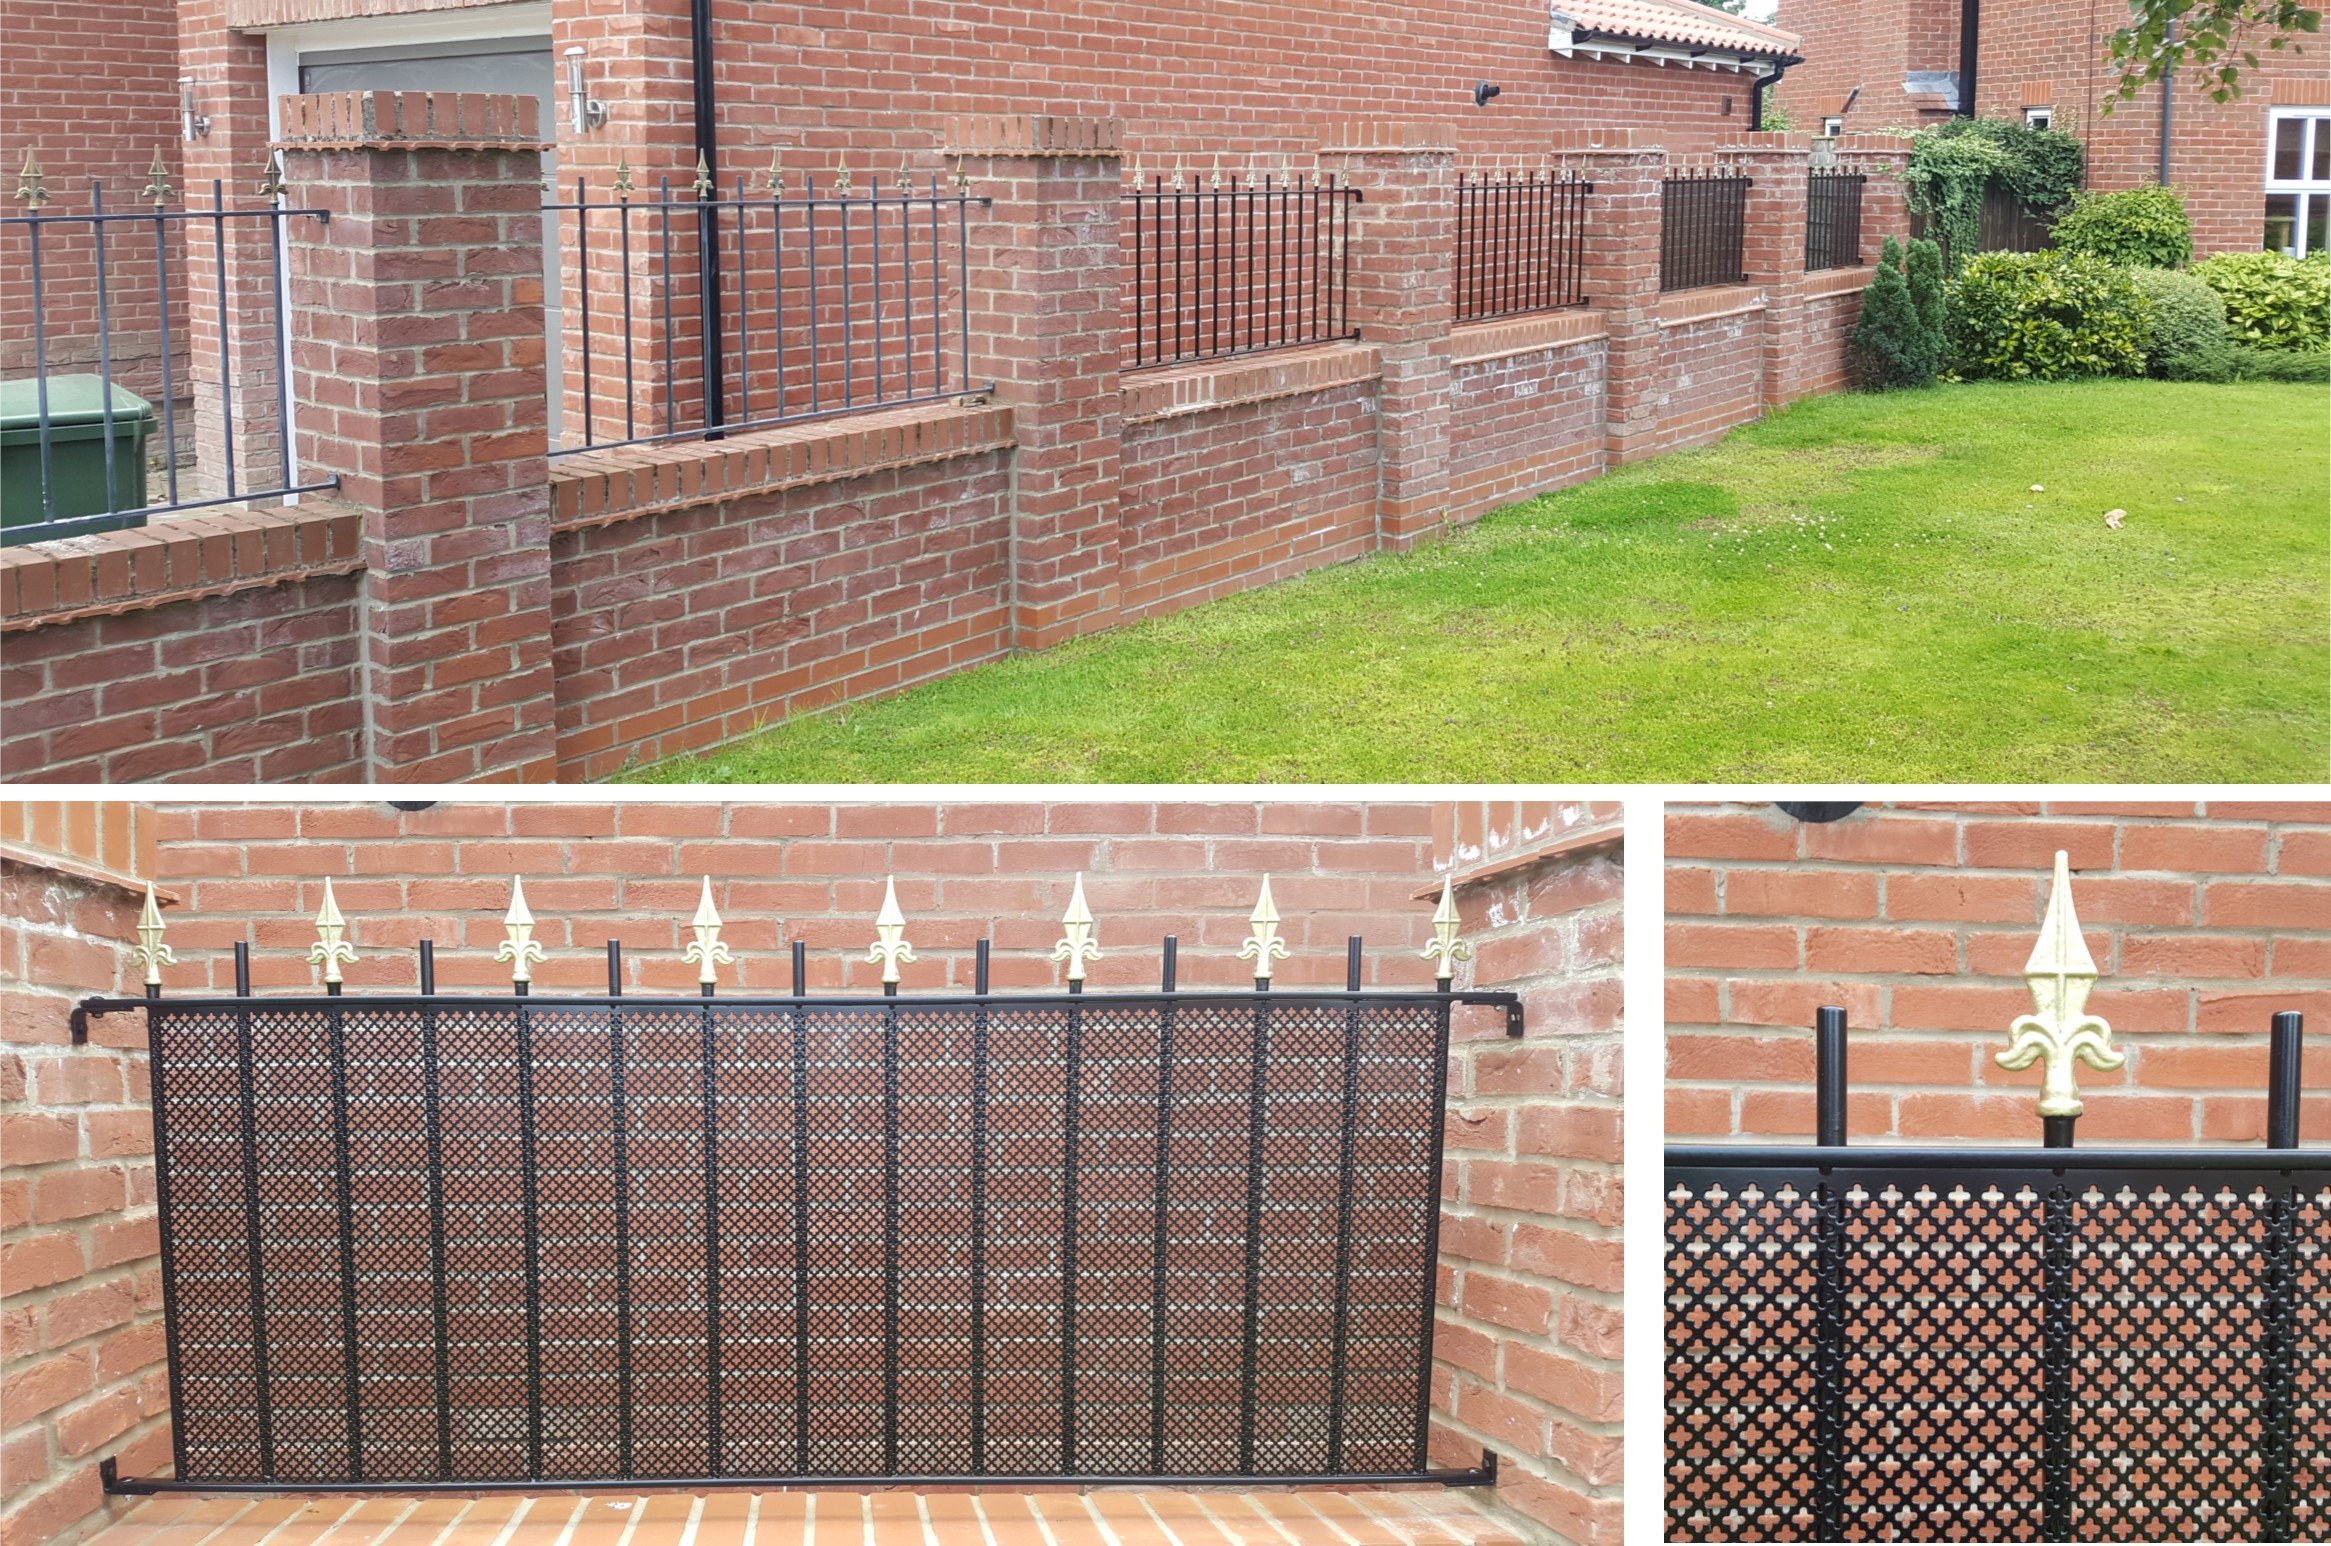 Wall railings with privacy mesh panels.